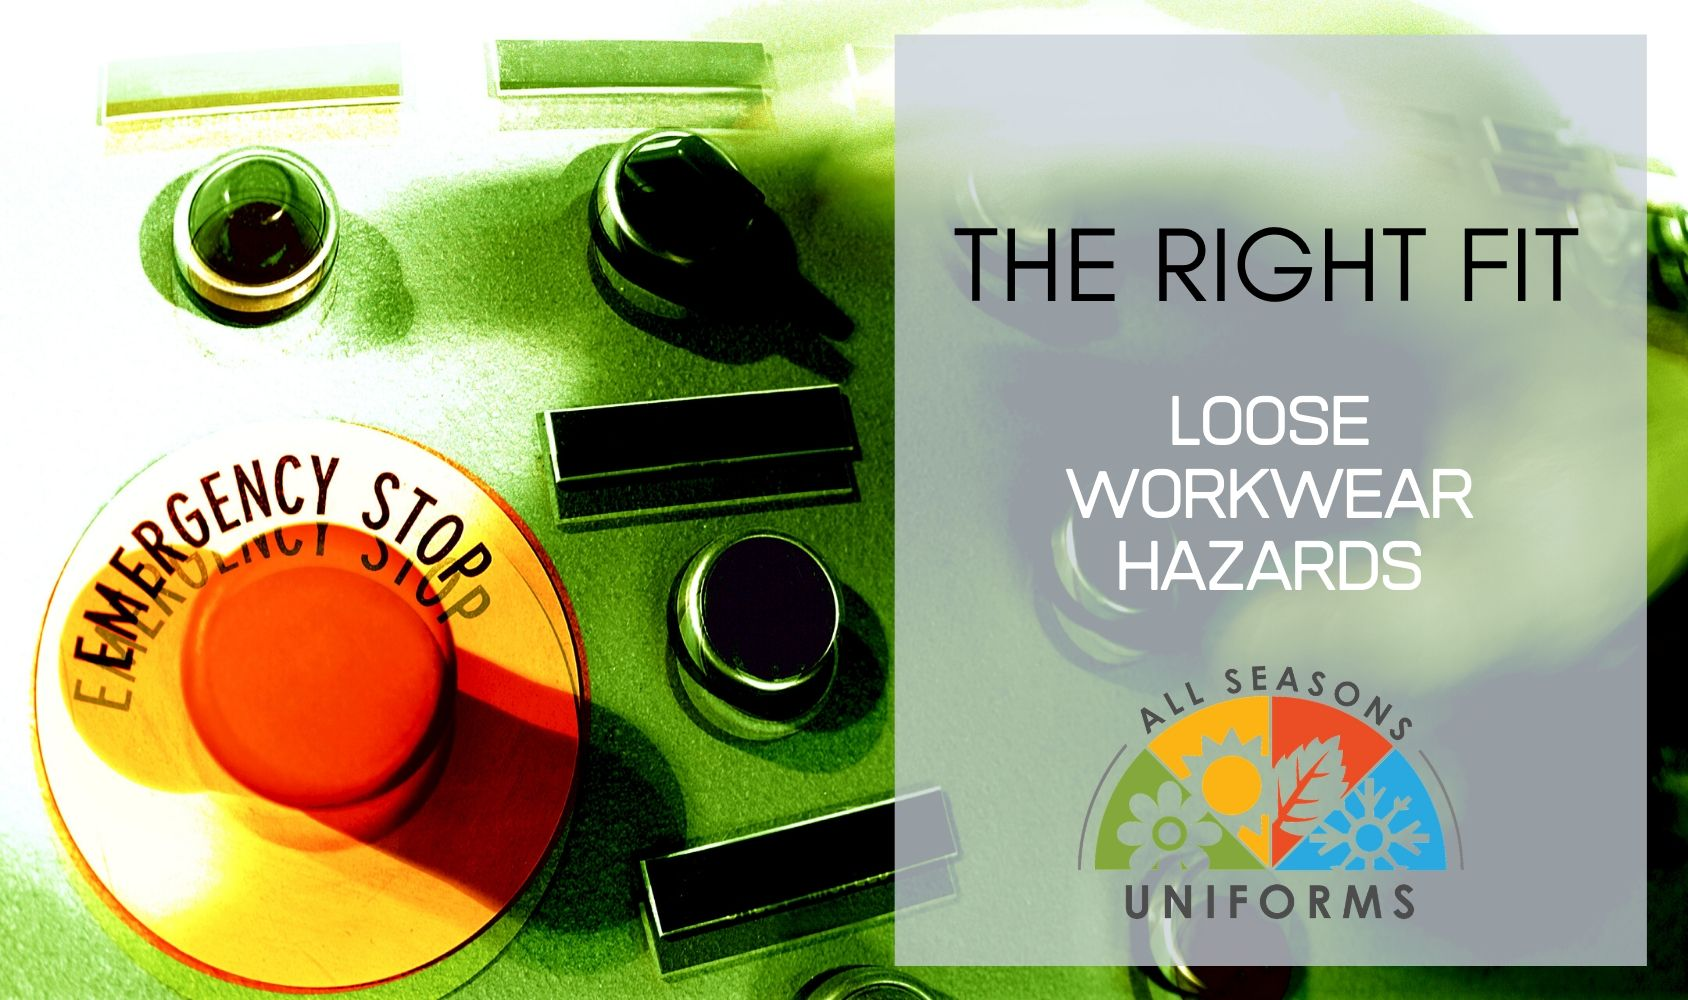 The Right Fit – Loose Workwear Hazards